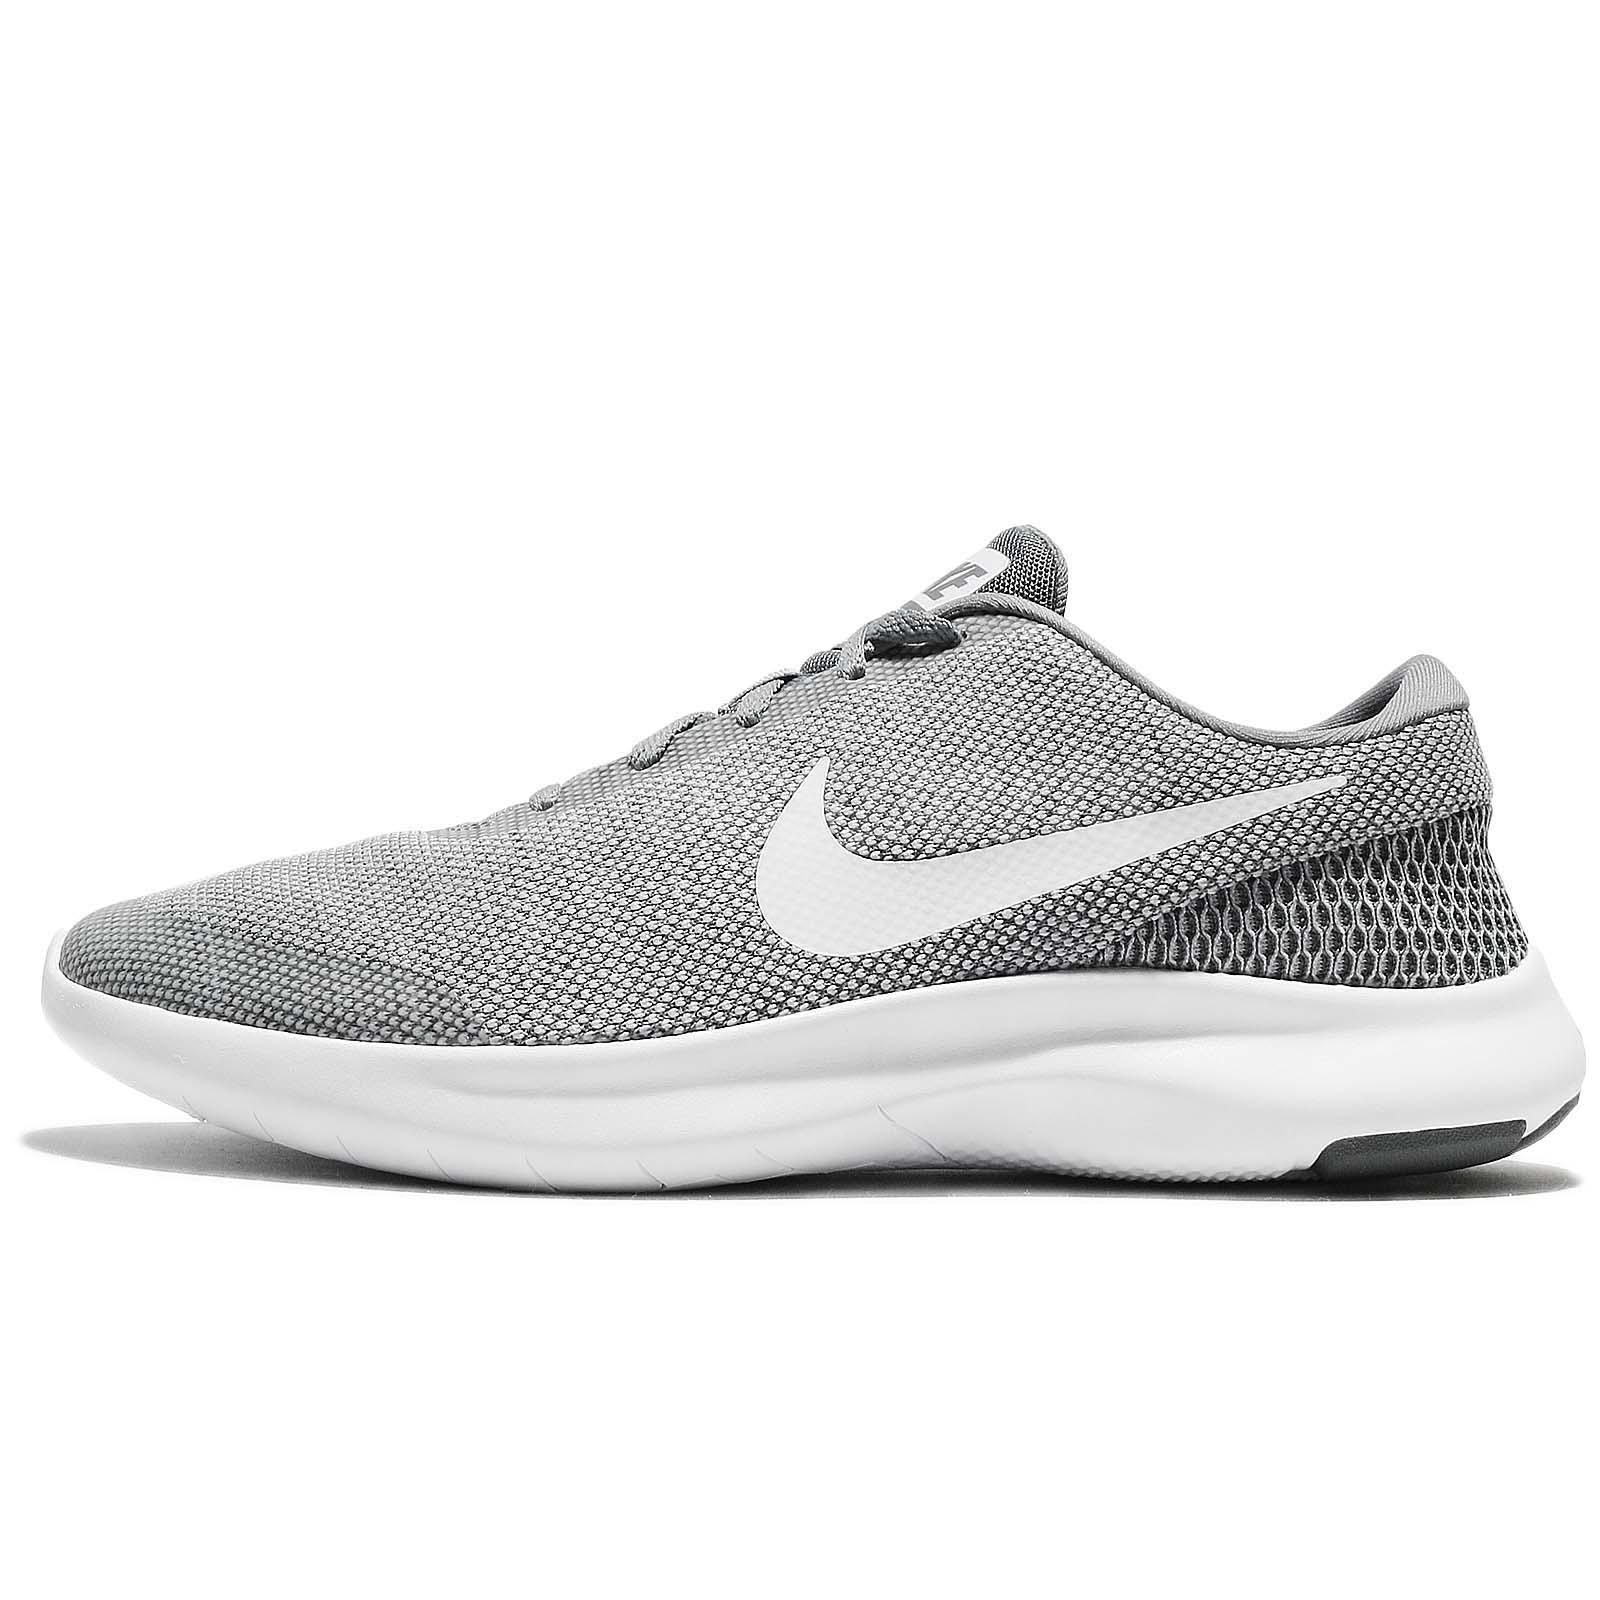 5a57b30ee30f Nike Flex Experience RN 7 VII Wolf Grey White Men Running Shoes 908985-010